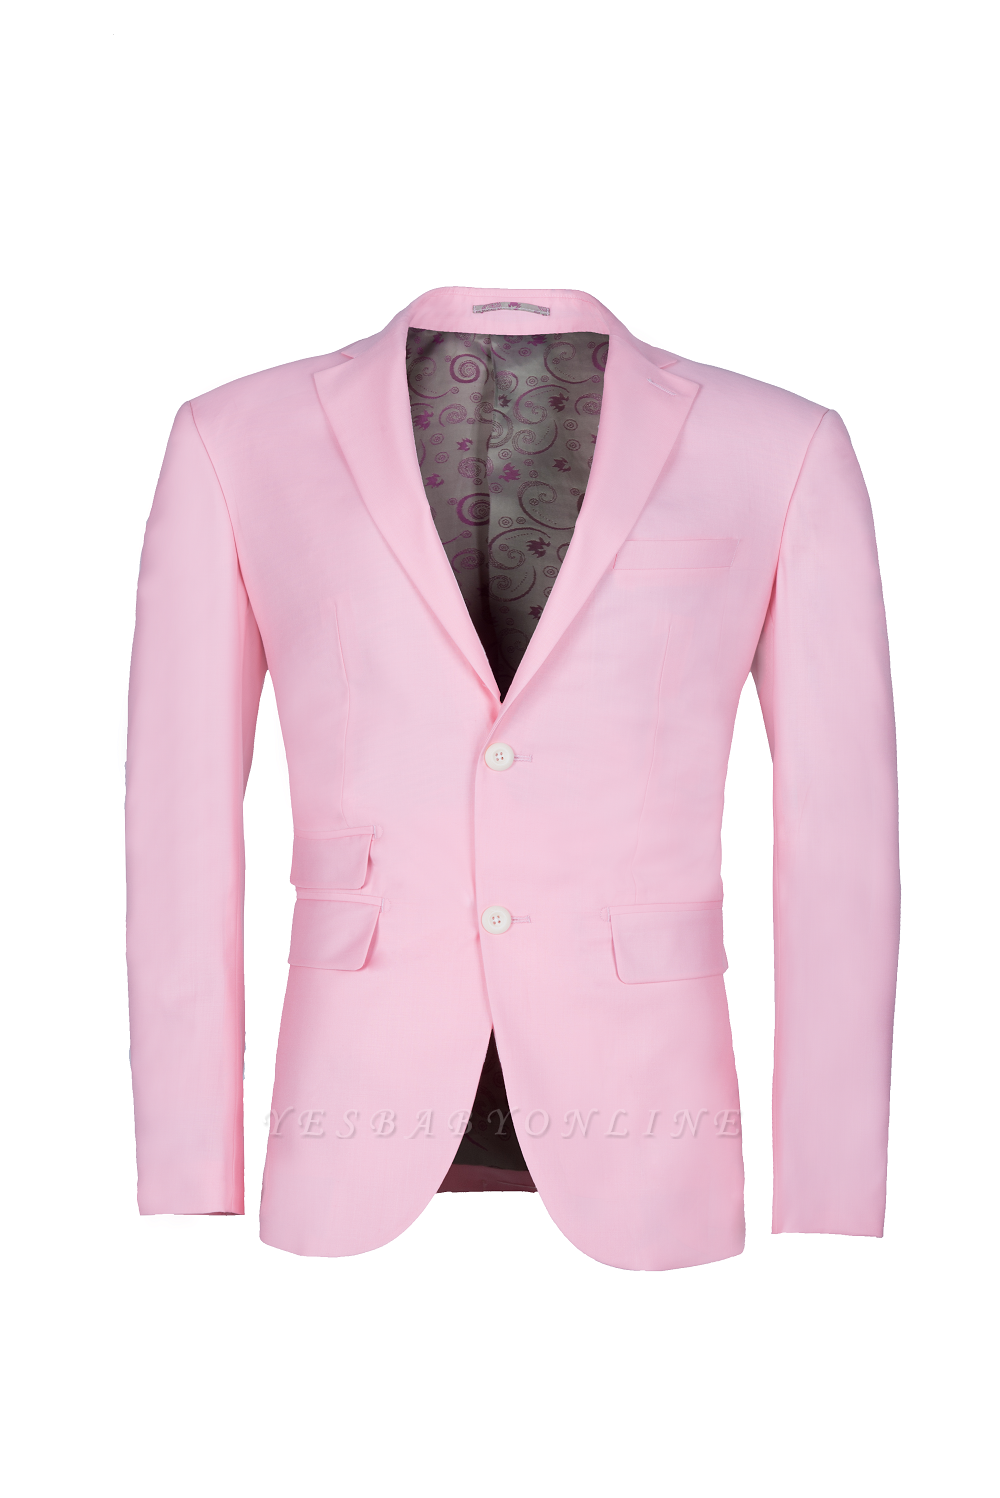 Peak Lapel Candy Pink Single Breasted Wedding Suit For Men